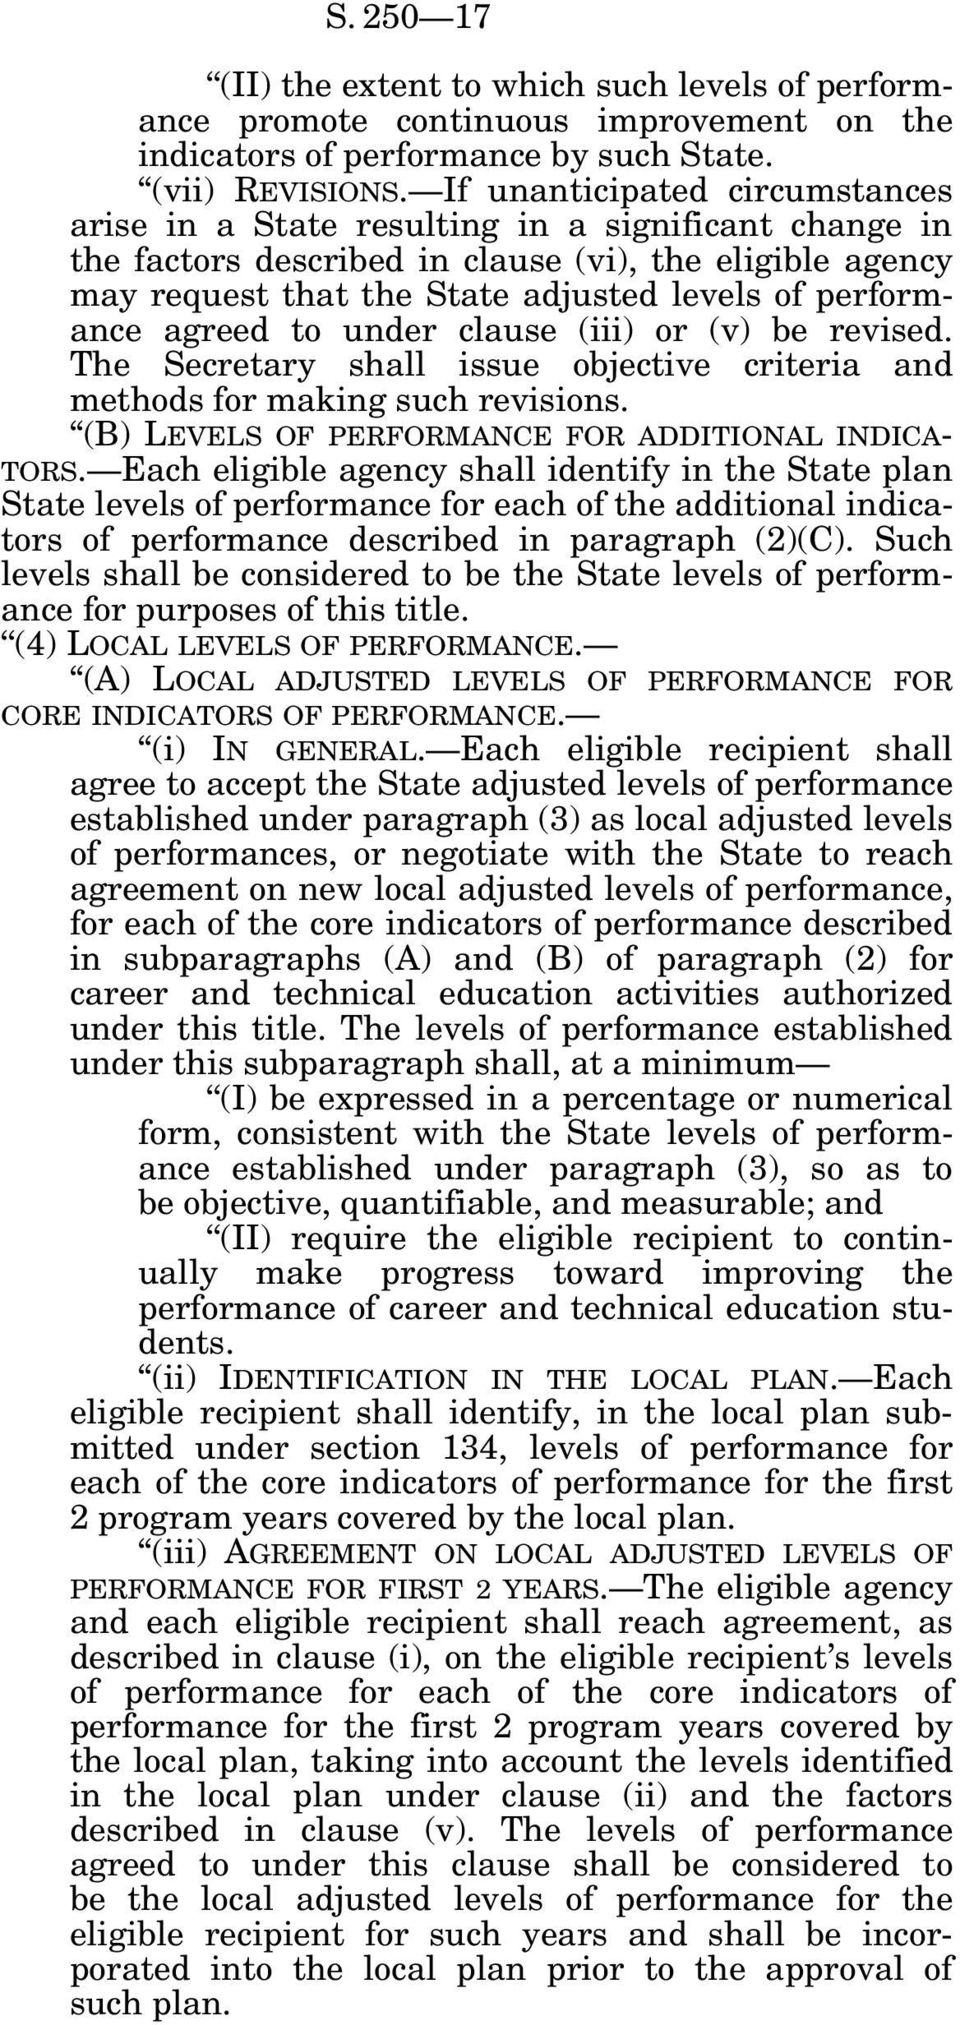 performance agreed to under clause (iii) or (v) be revised. The Secretary shall issue objective criteria and methods for making such revisions. (B) LEVELS OF PERFORMANCE FOR ADDITIONAL INDICA- TORS.